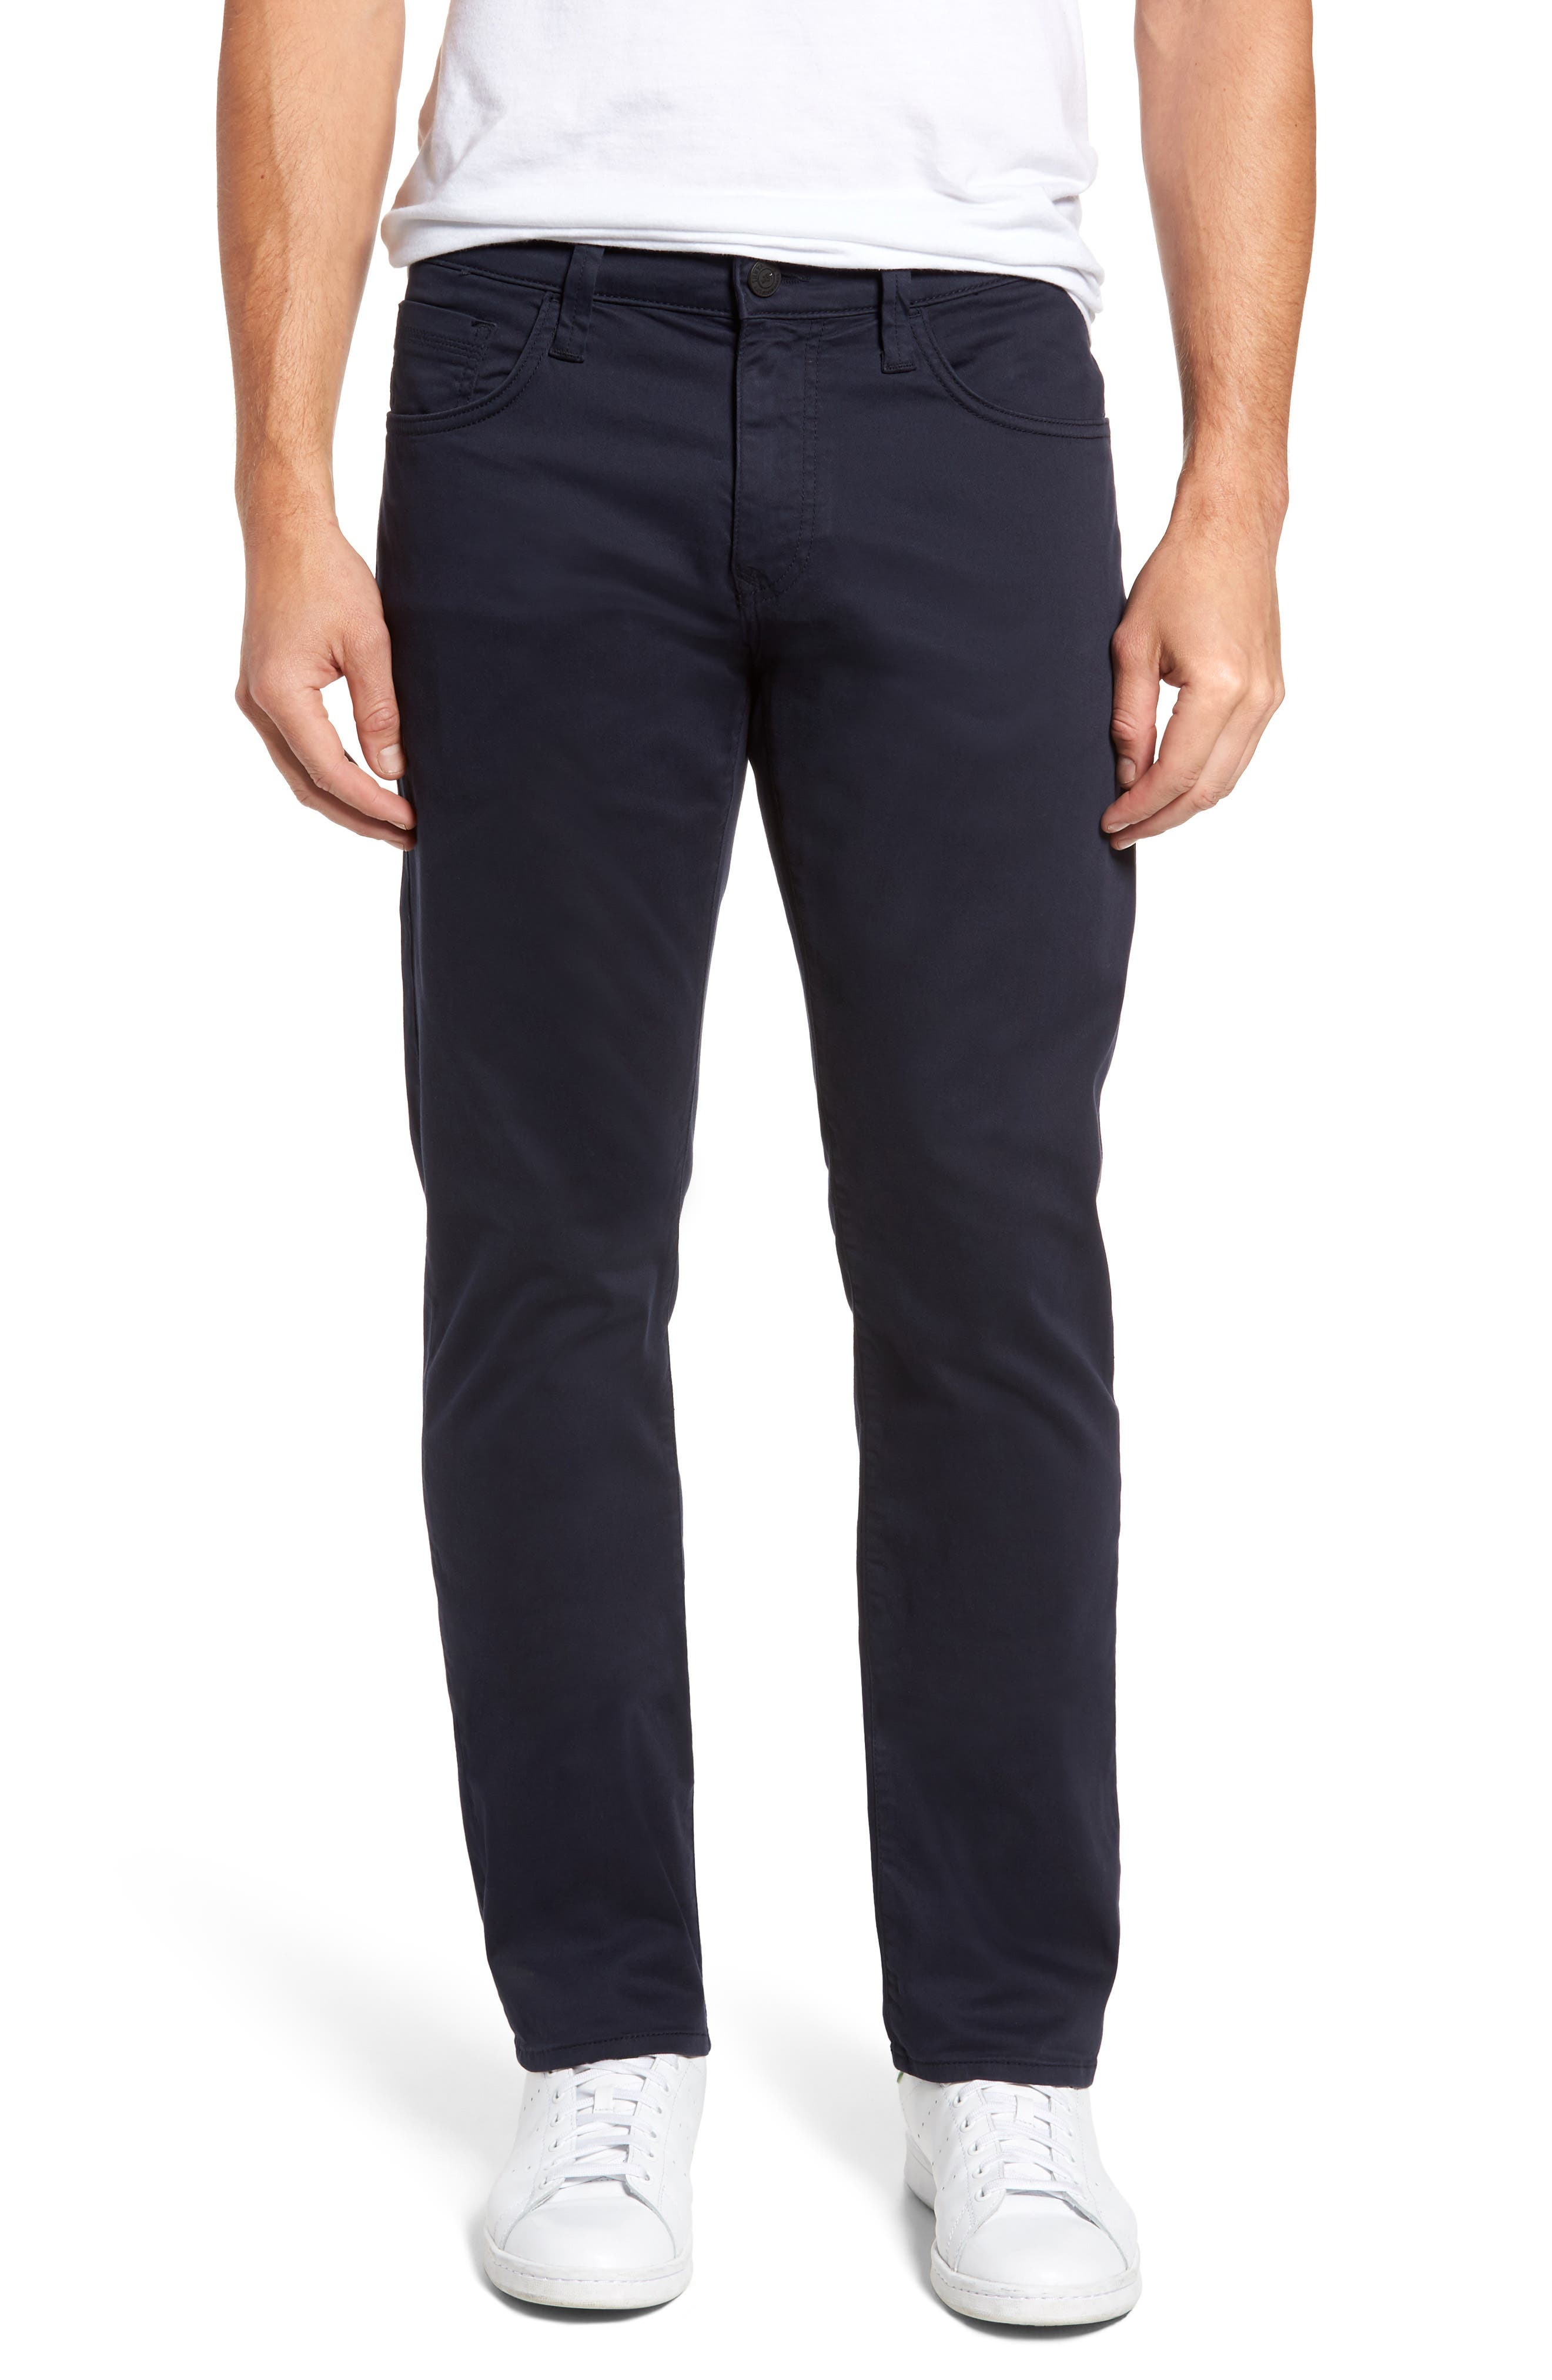 Zach Straight Fit Twill Pants,                         Main,                         color, Dark Navy Twill